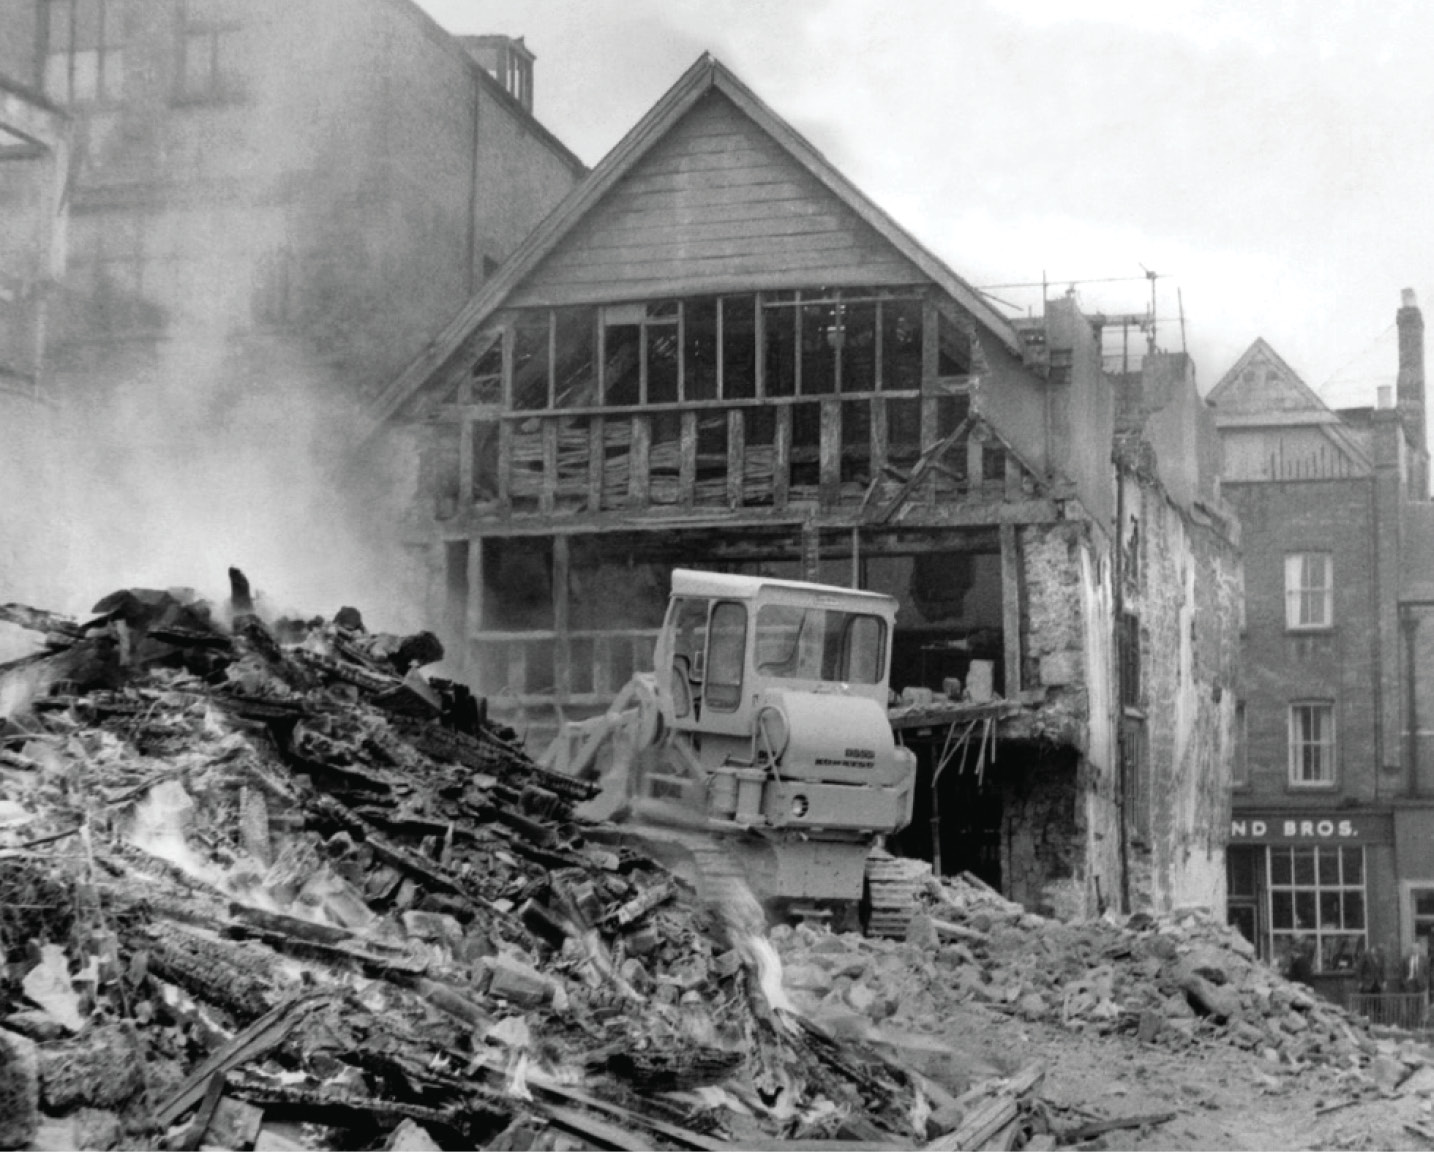 LEFT The demolition of 38 North Street in May 1972 one of many urban development schemes in Exeter that also offered archaeological opportunities.